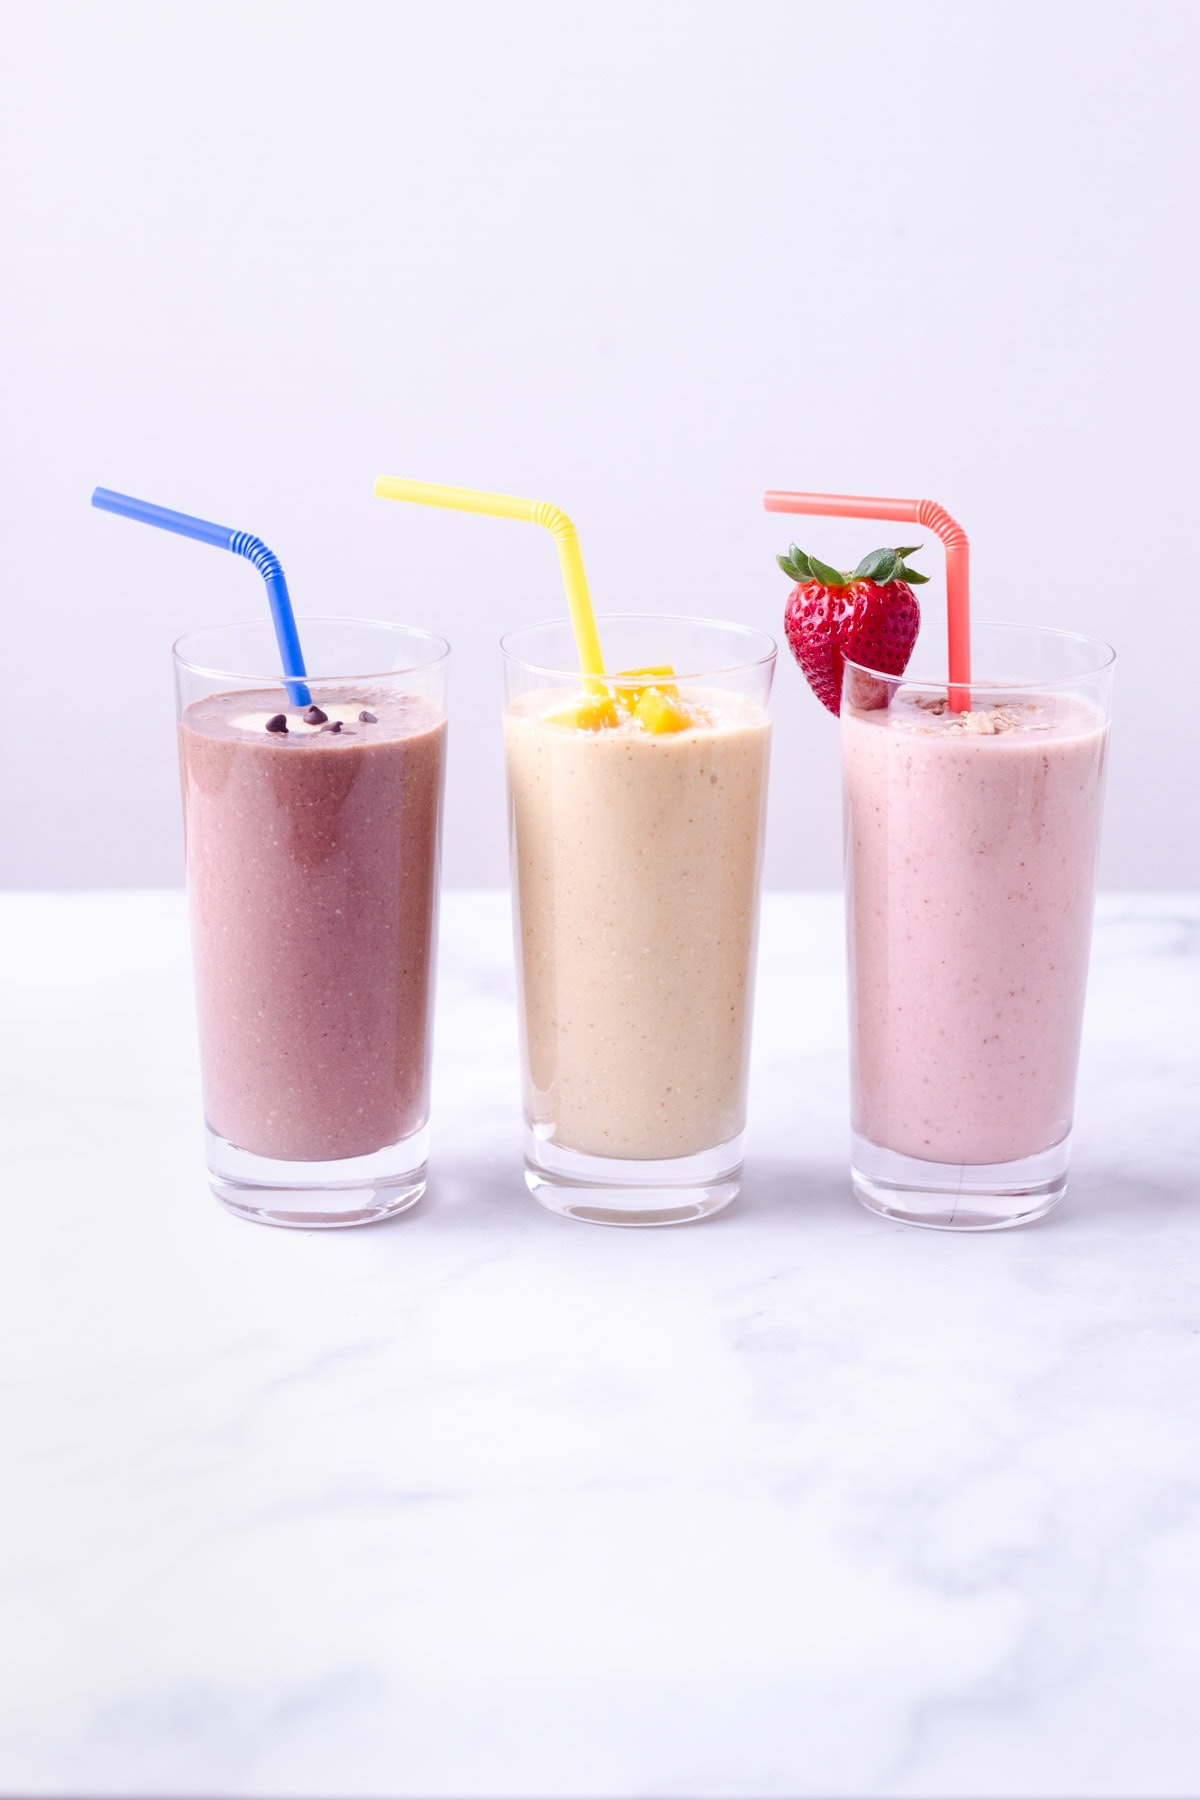 Three breakfast oatmeal smoothies lined up: chocolate, mango and strawberry.